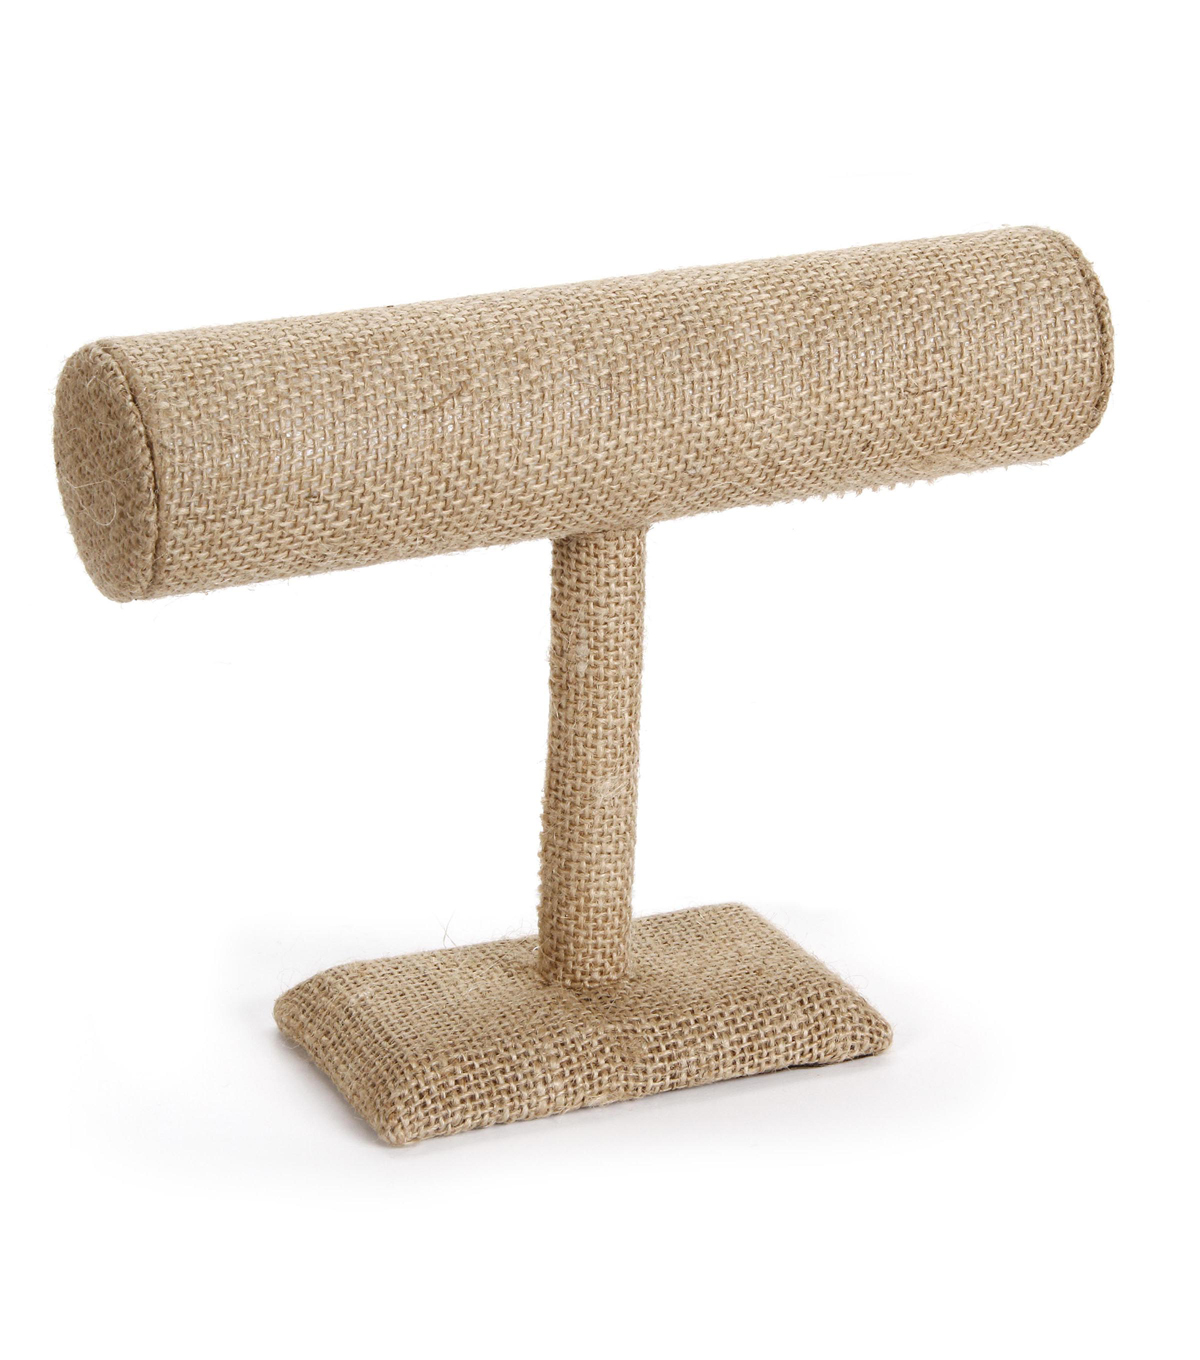 Burlap Covered Jewelry Bar Stand -  8.75 inches